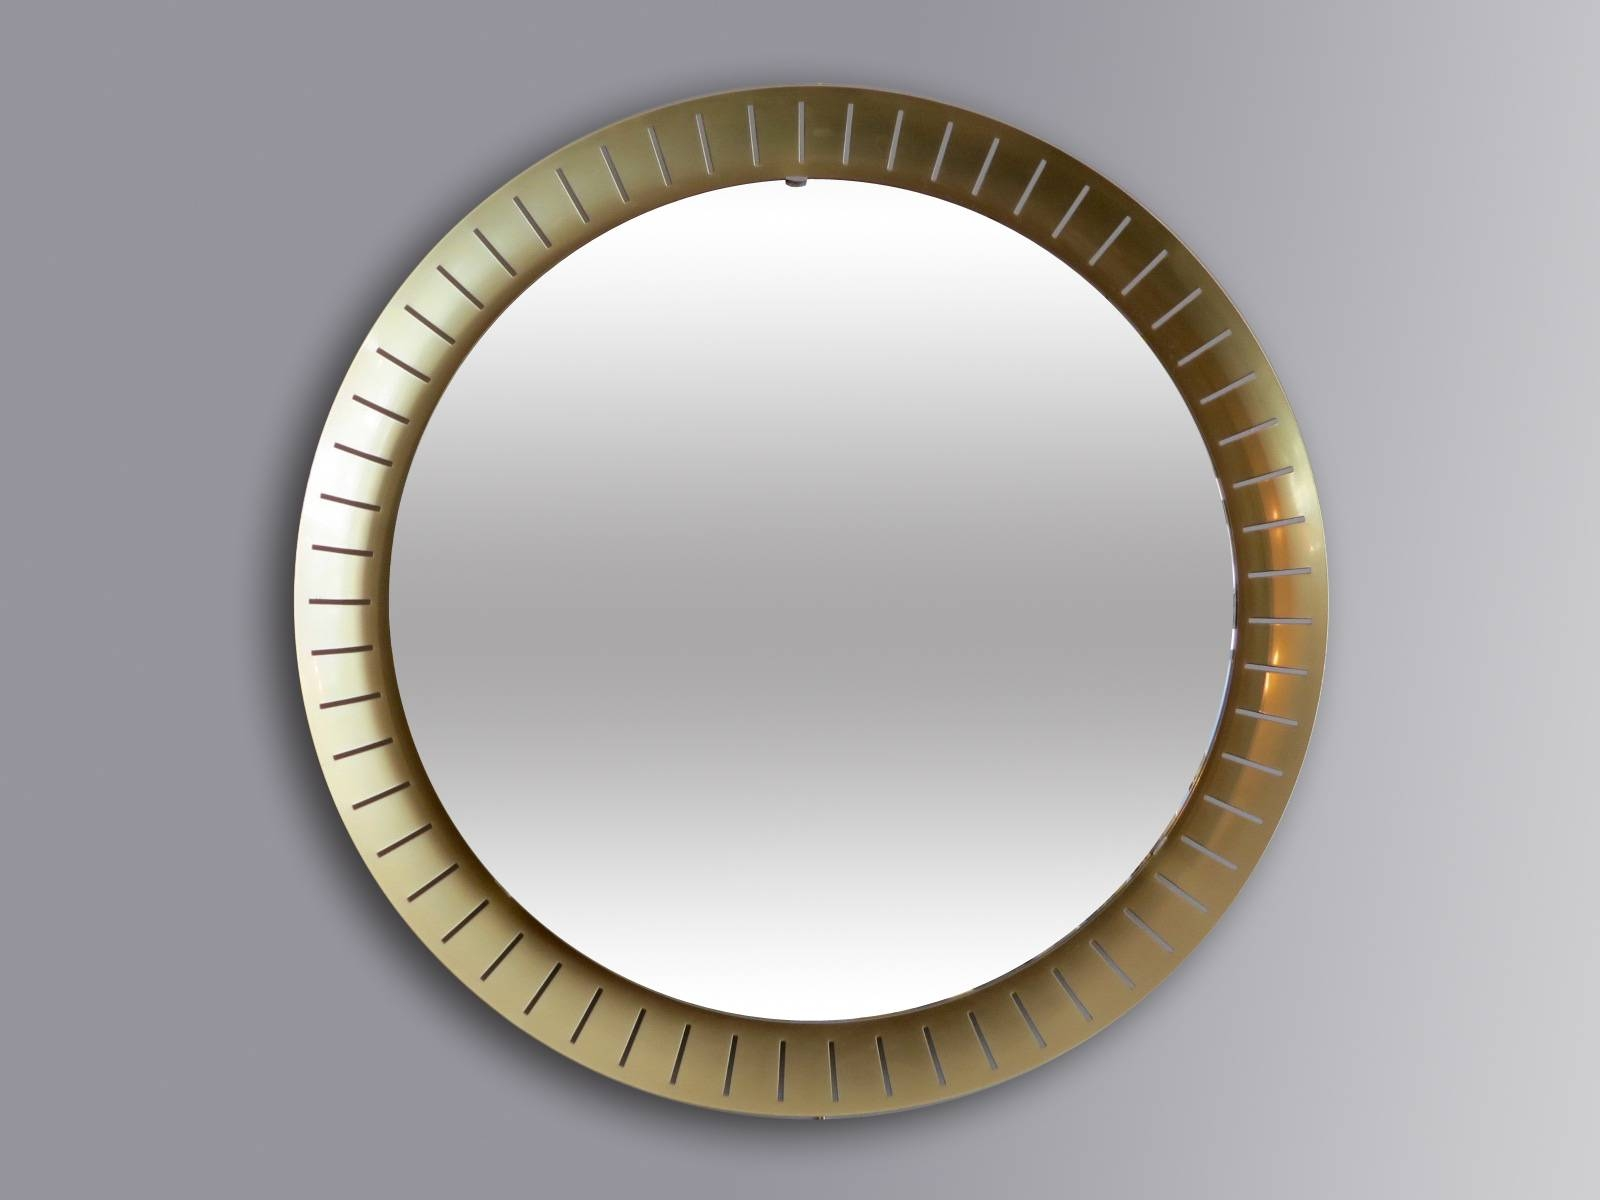 Large Circular Mirrors From Stilnovo, 1971, Set Of 2 For Sale At for Large Circular Mirrors (Image 11 of 25)